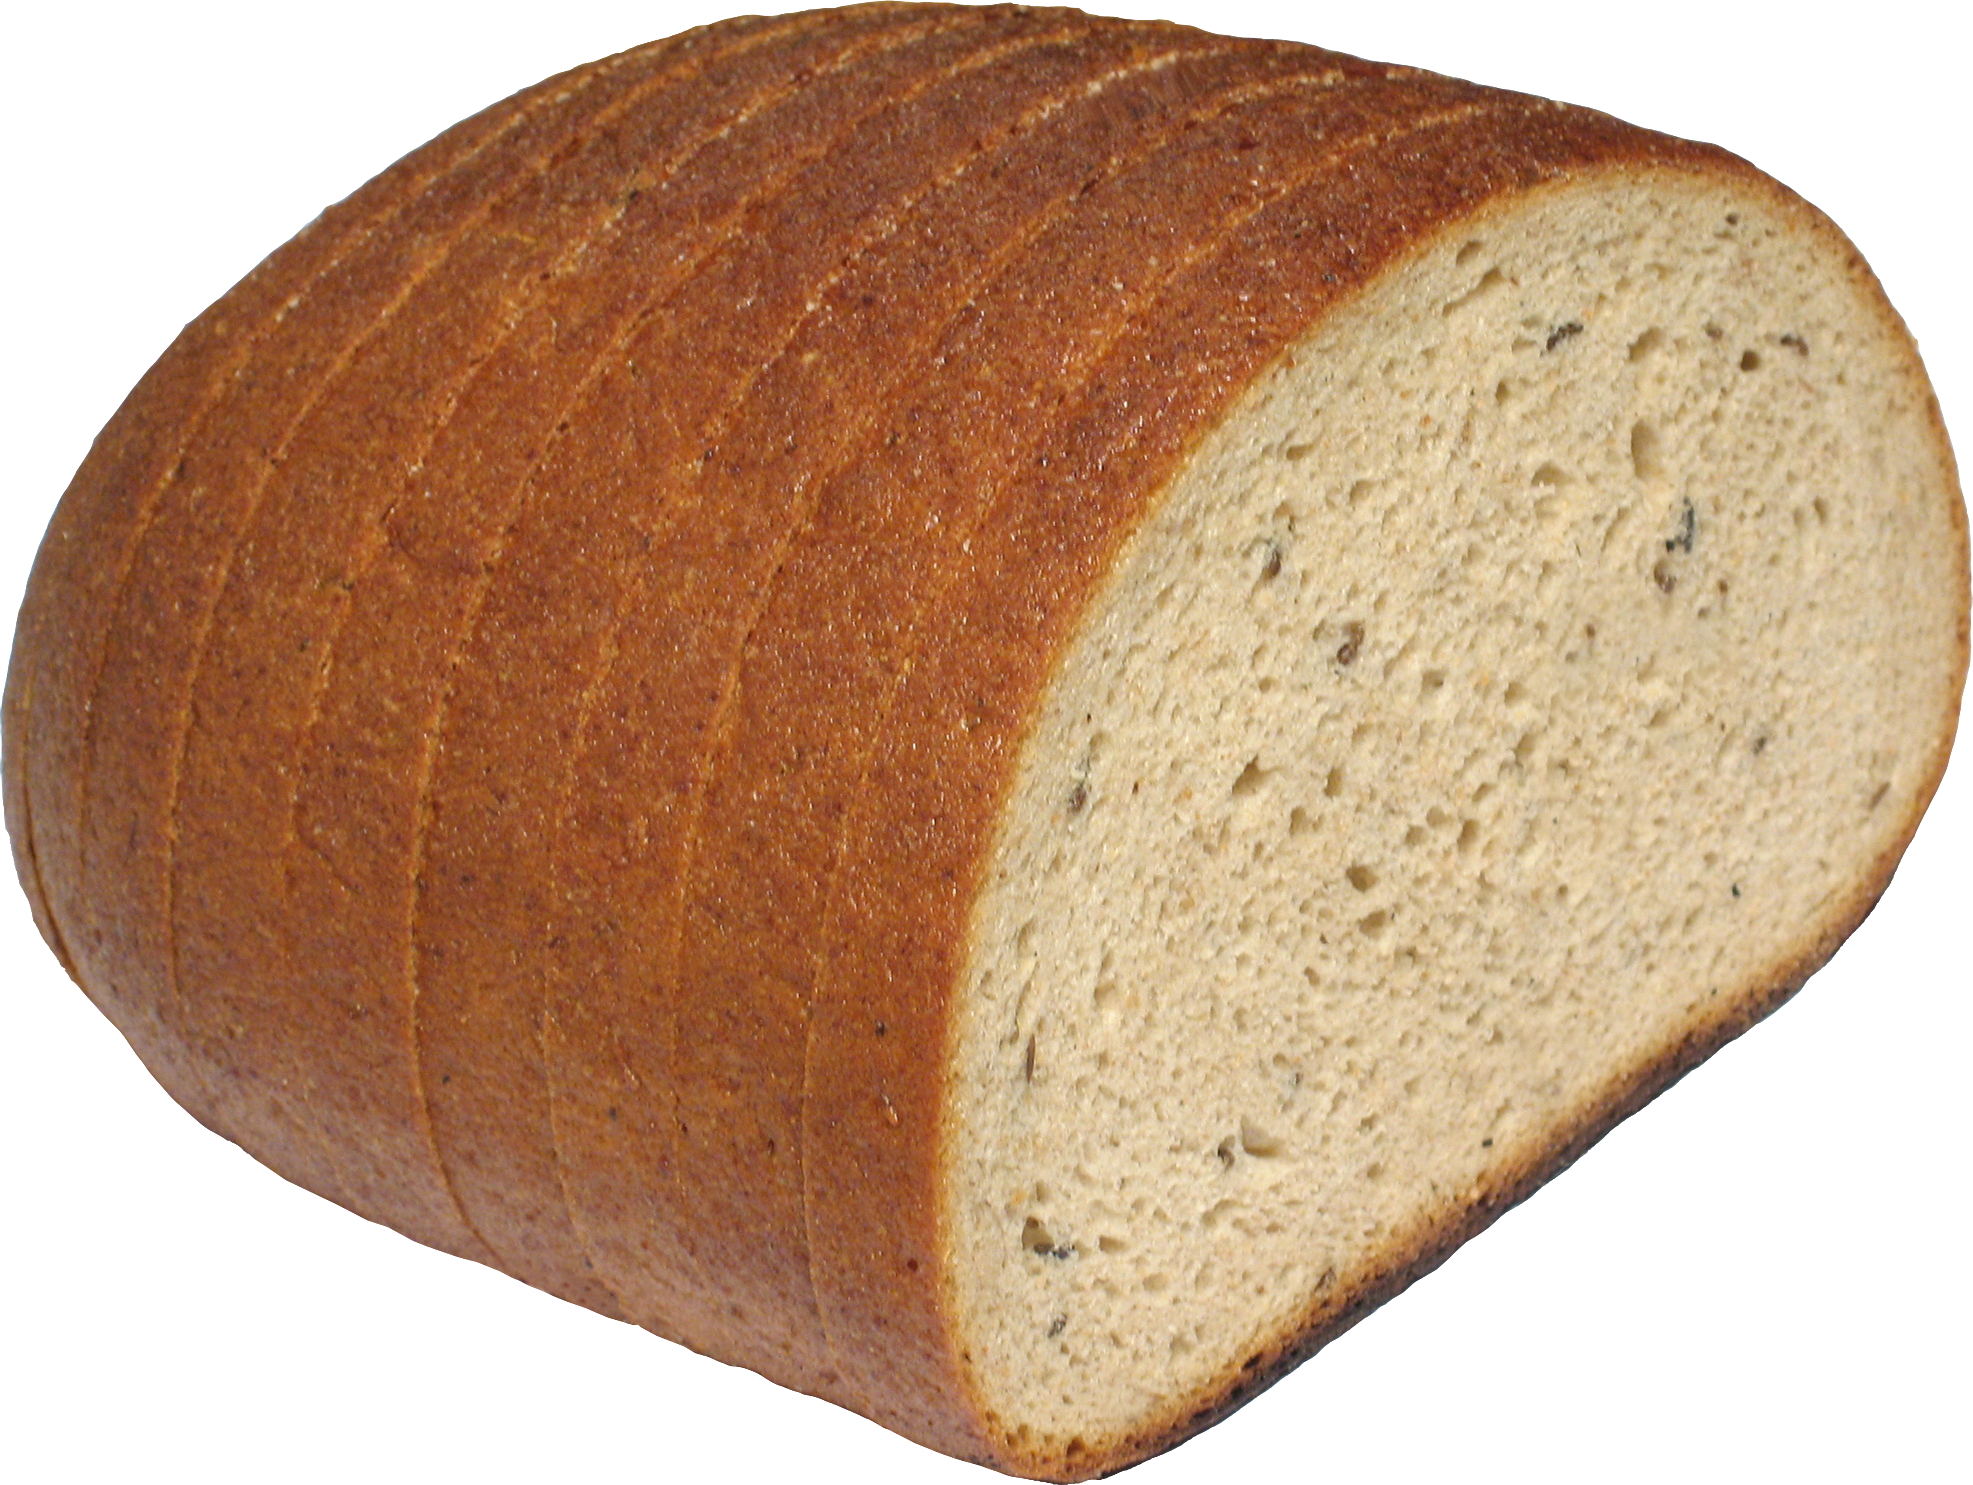 Clipart bread sliced bread. Cut png image purepng